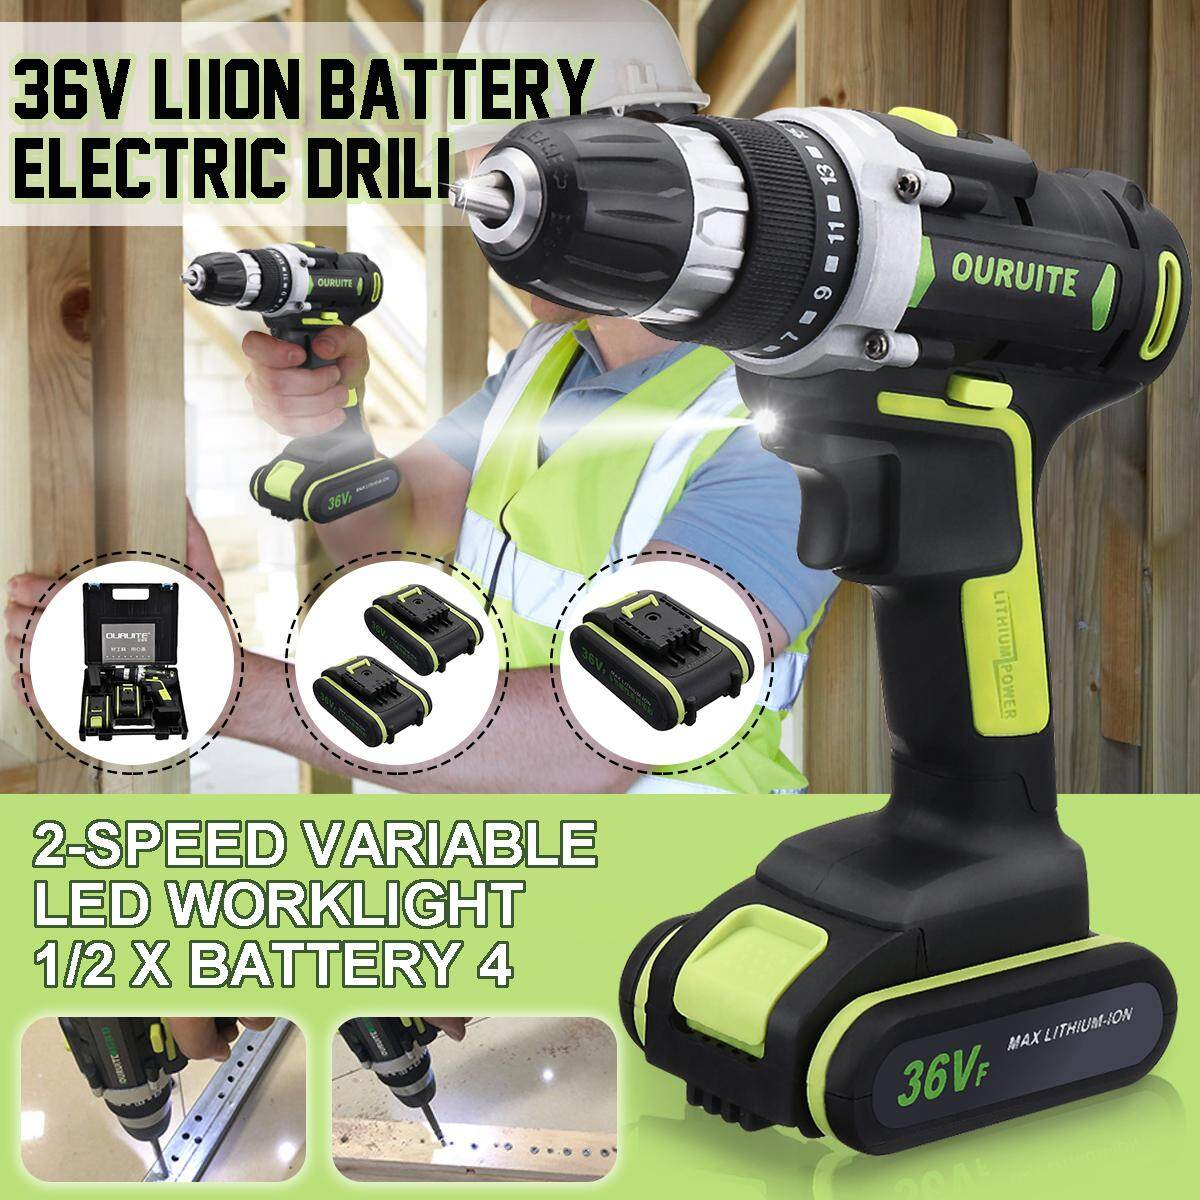 【Free Shipping + Flash Deal】36V Professional Cordless Rechargeable Wireless Electric Screwdriver Cordless Drill Hammer Drill 0.8-10mm Chuck Li-ion Battery LED Light Double Speed Power Multifunctional Household Power Tool